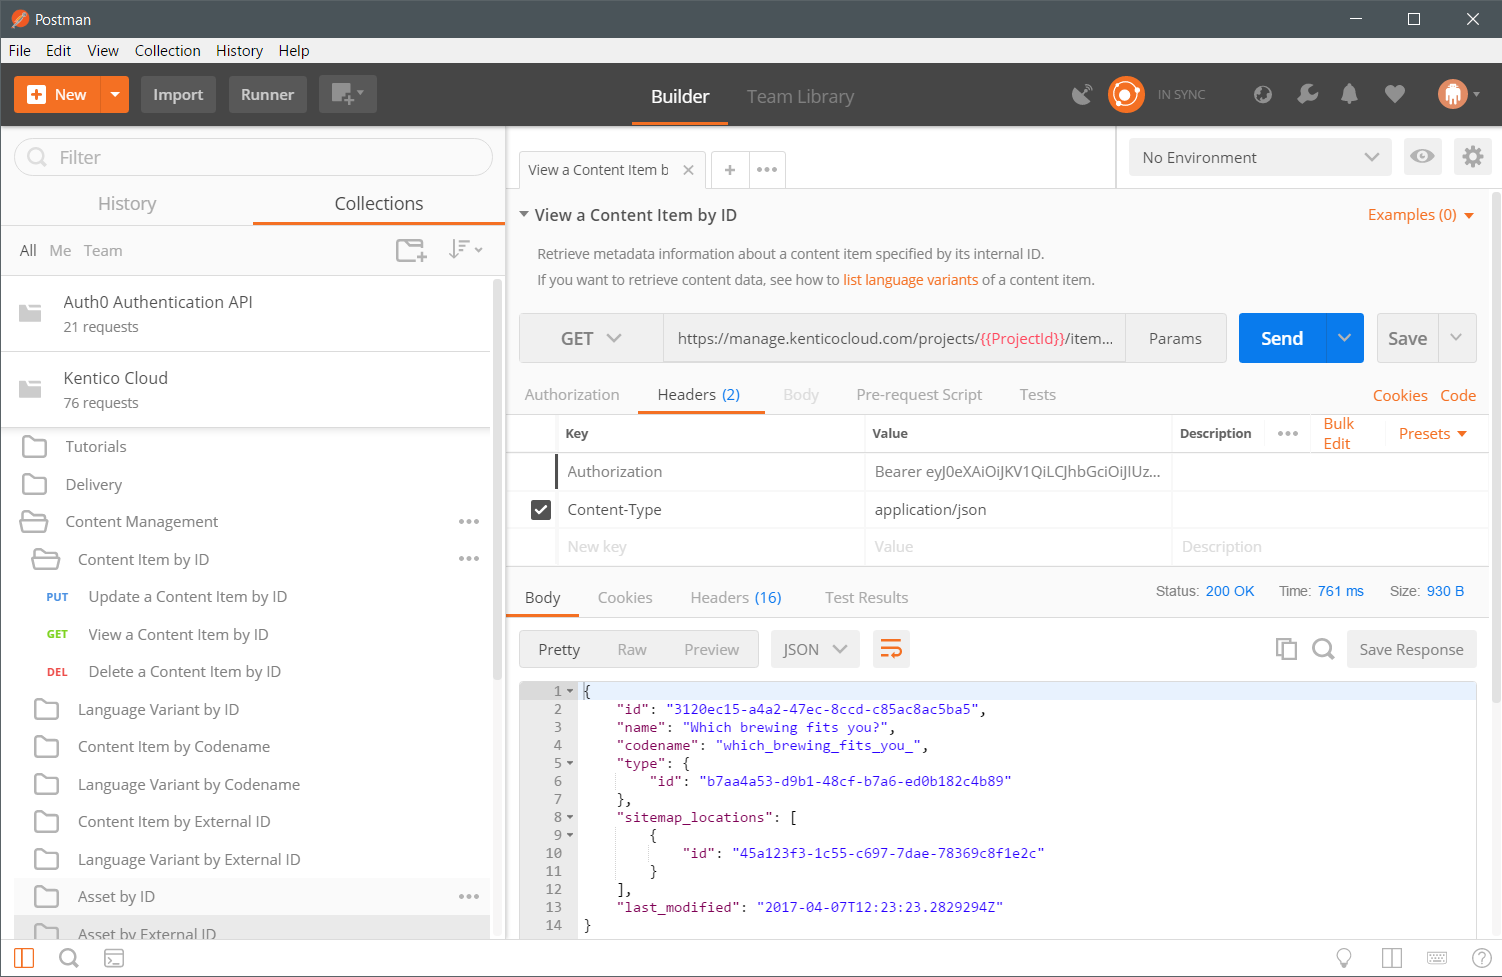 An example Kentico Cloud request in Postman